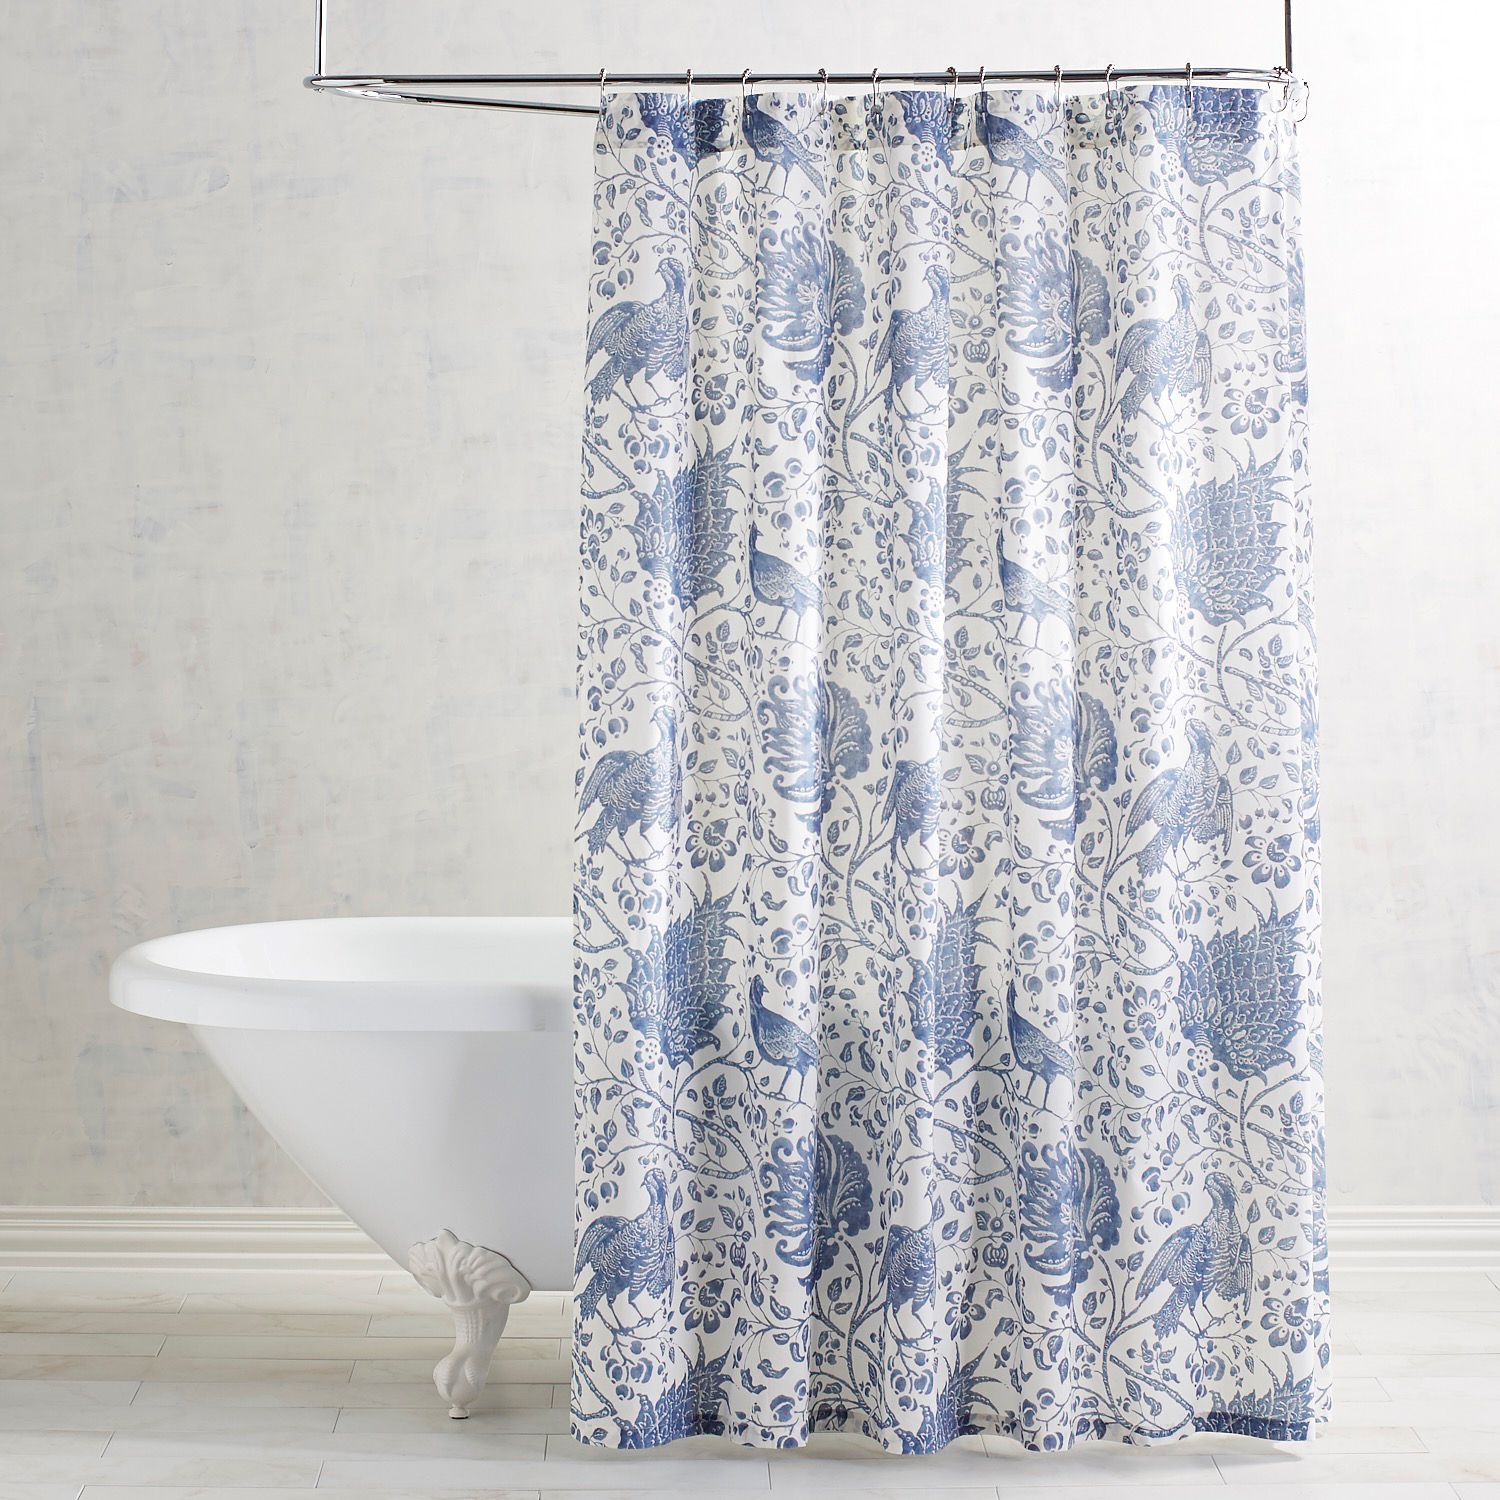 Null Blue White Shower Curtain Blue Shower Curtains White